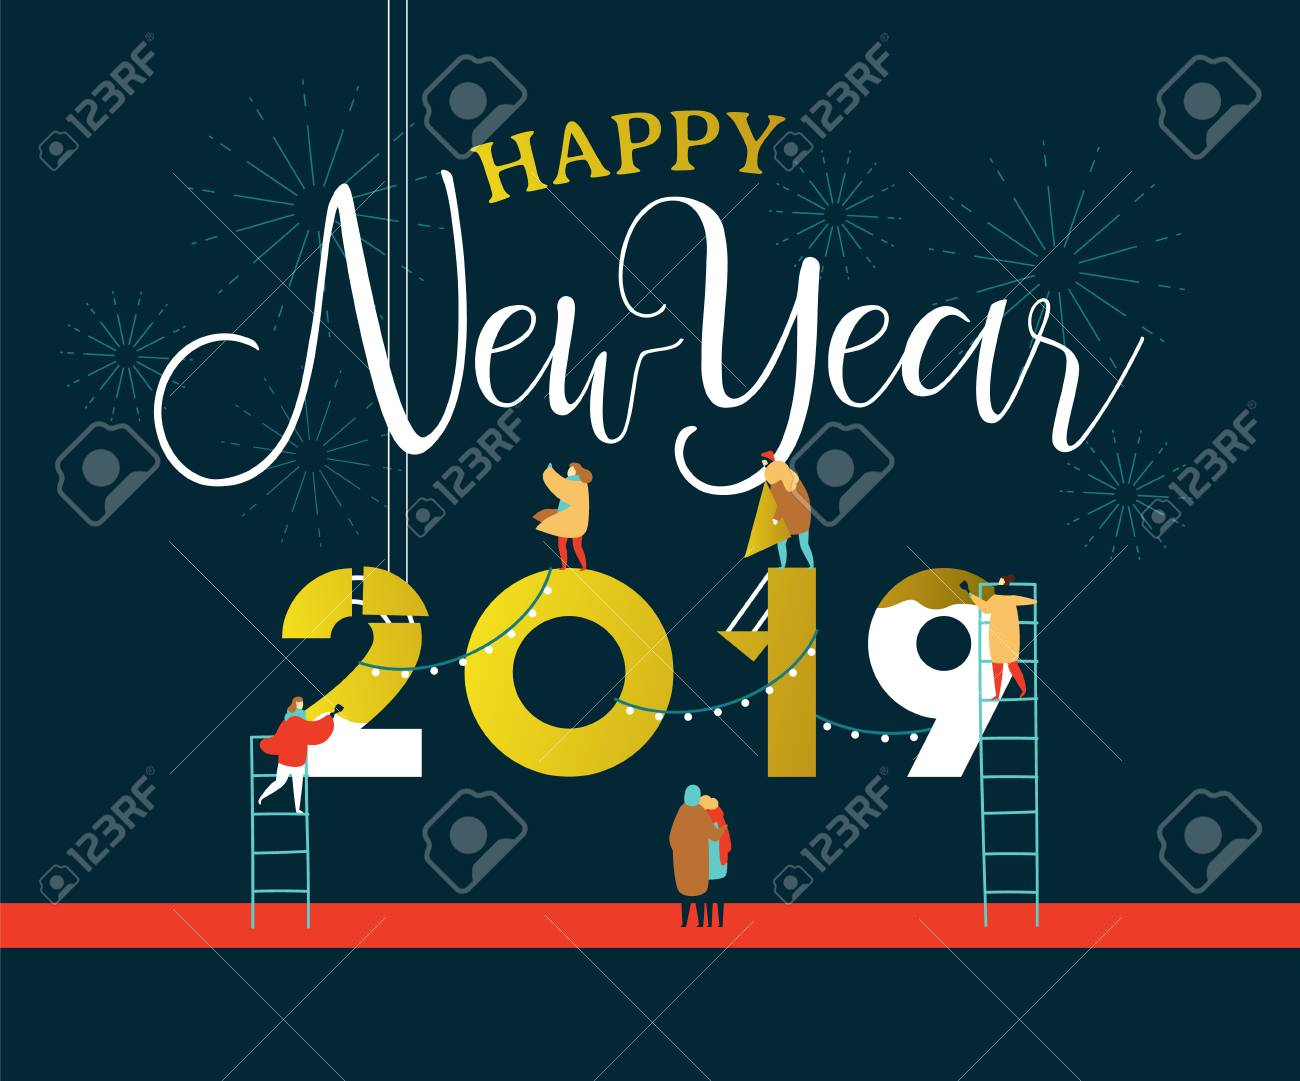 Happy New Year greeting card illustration for celebration event with fun people group building 2019 sign together on firework night sky. EPS10 vector. - 113542892